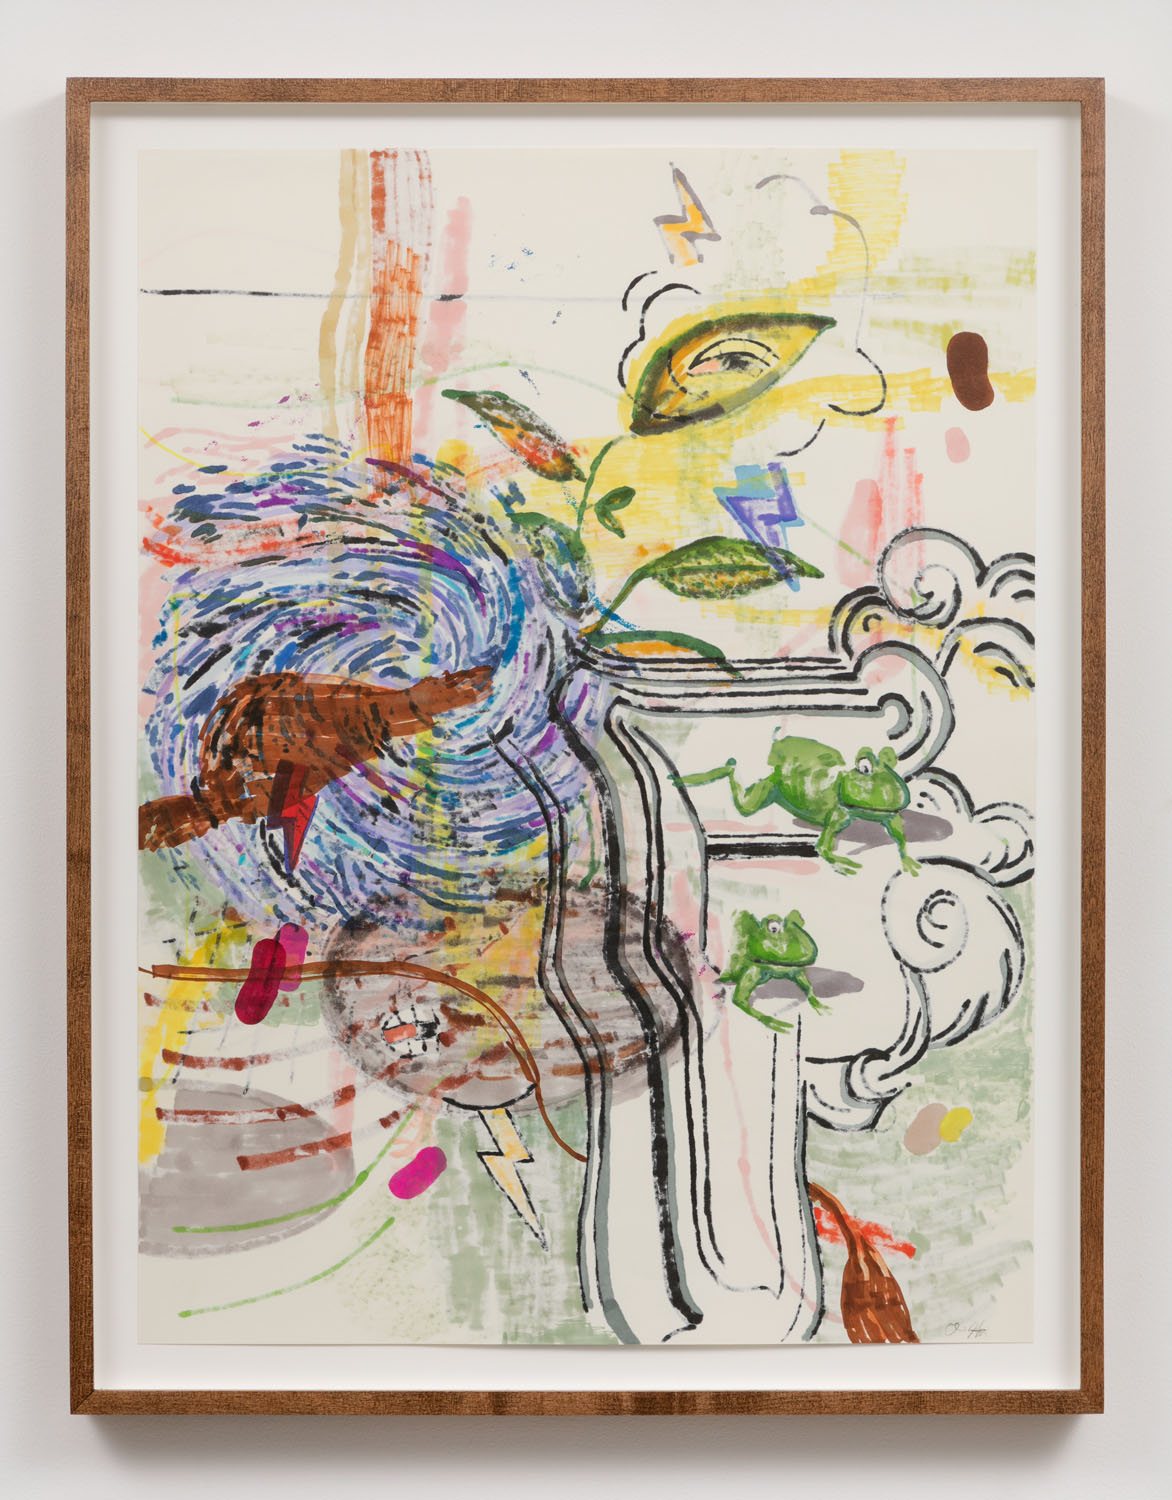 Chris Hood   Untitled (Refraction Drawing 7) , 2018  Ink and markers on Canson classic cream  24 x 18 inches (framed)